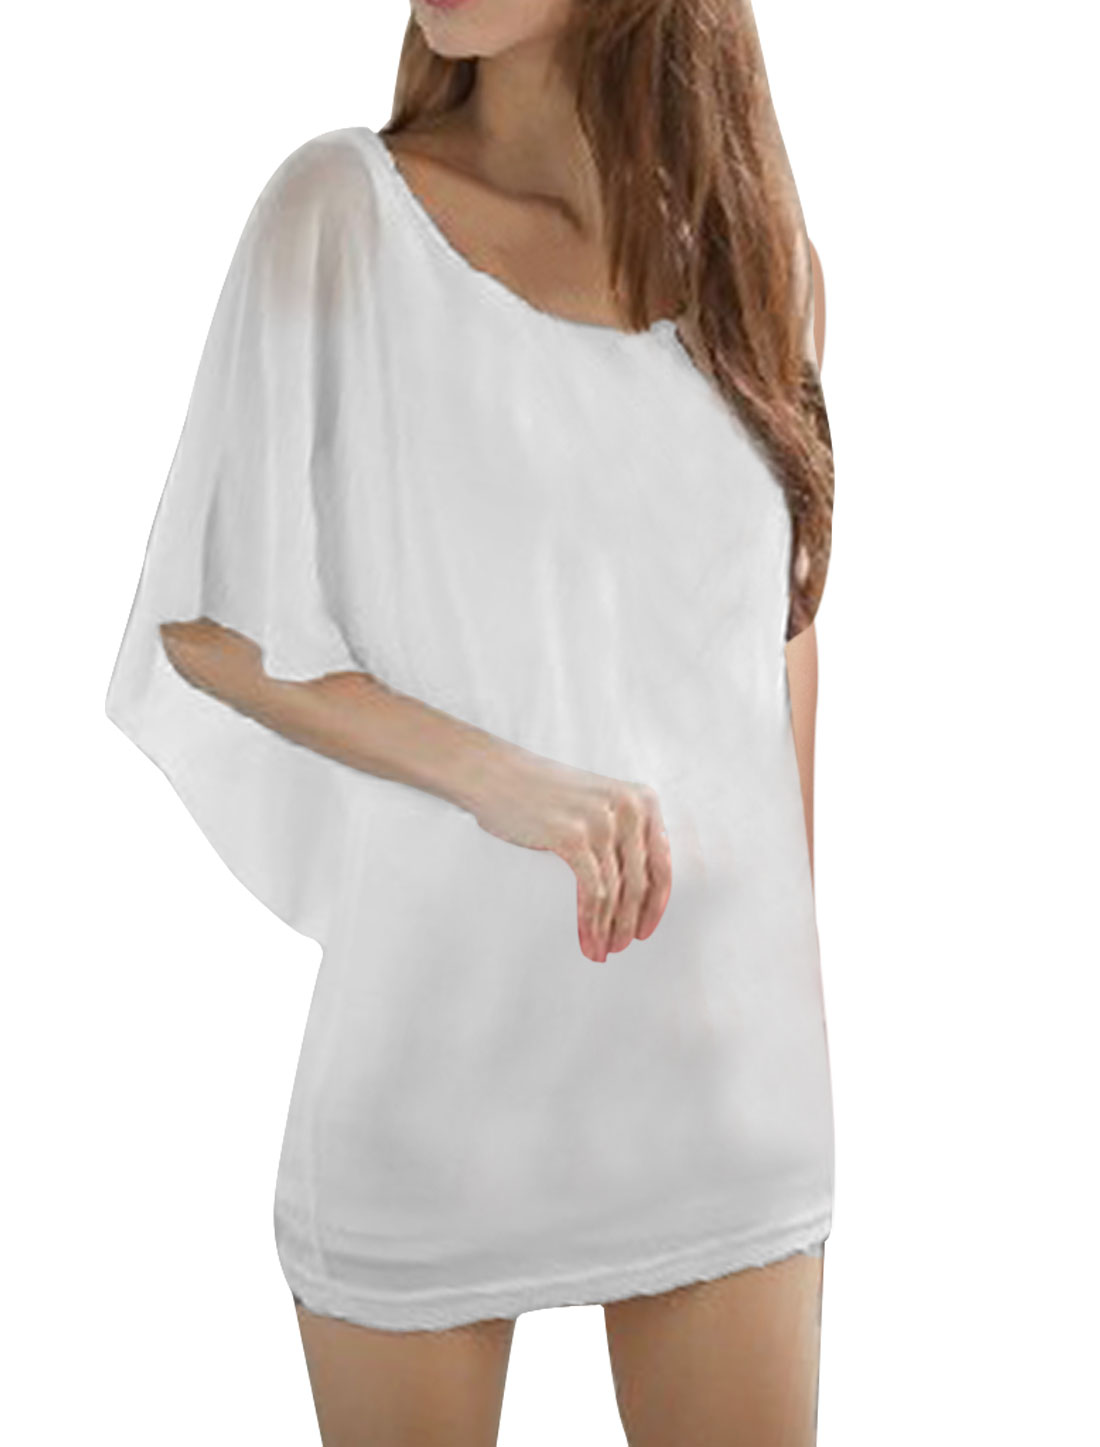 Ladies Round Neck Pullover Batwing Sleeve Solid Color Mesh Fake Two Piece Dress White XS